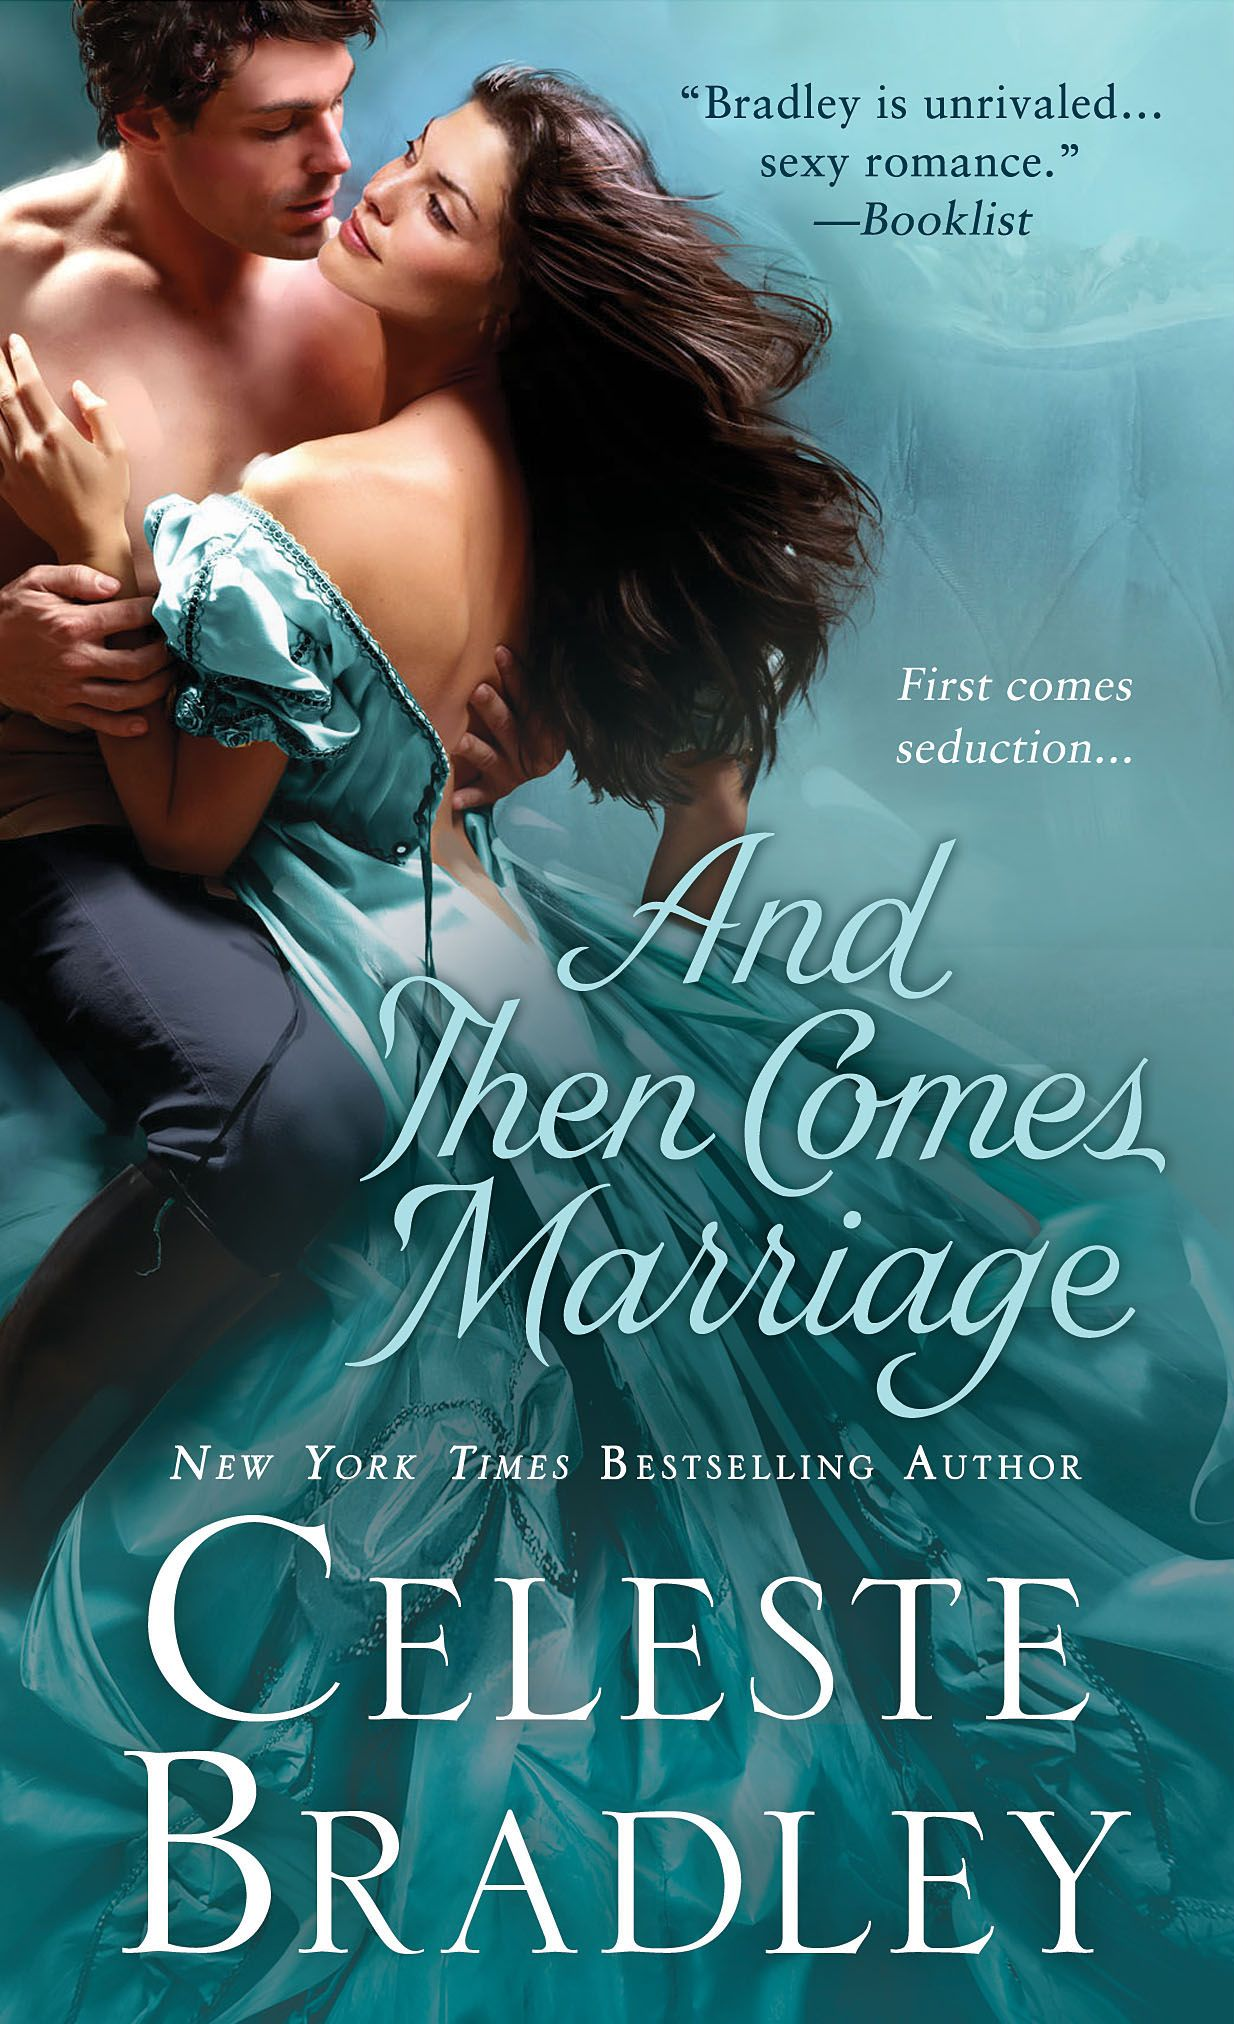 Historical Romance Book Cover : Celeste bradley and then comes marriage book the